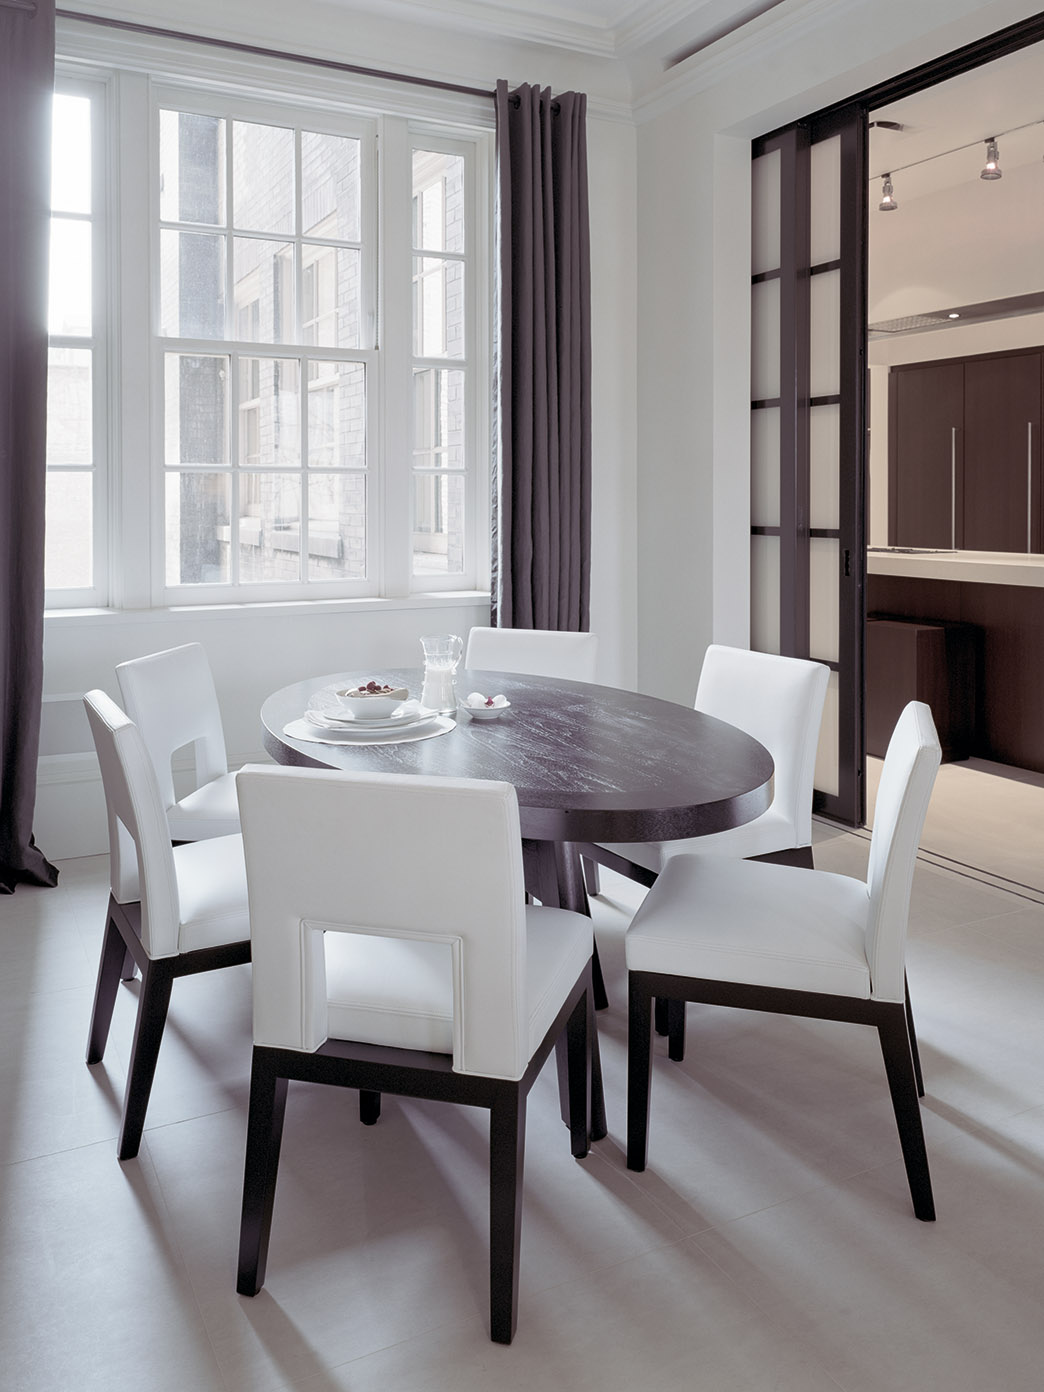 Fifth Avenue Apartment NYC